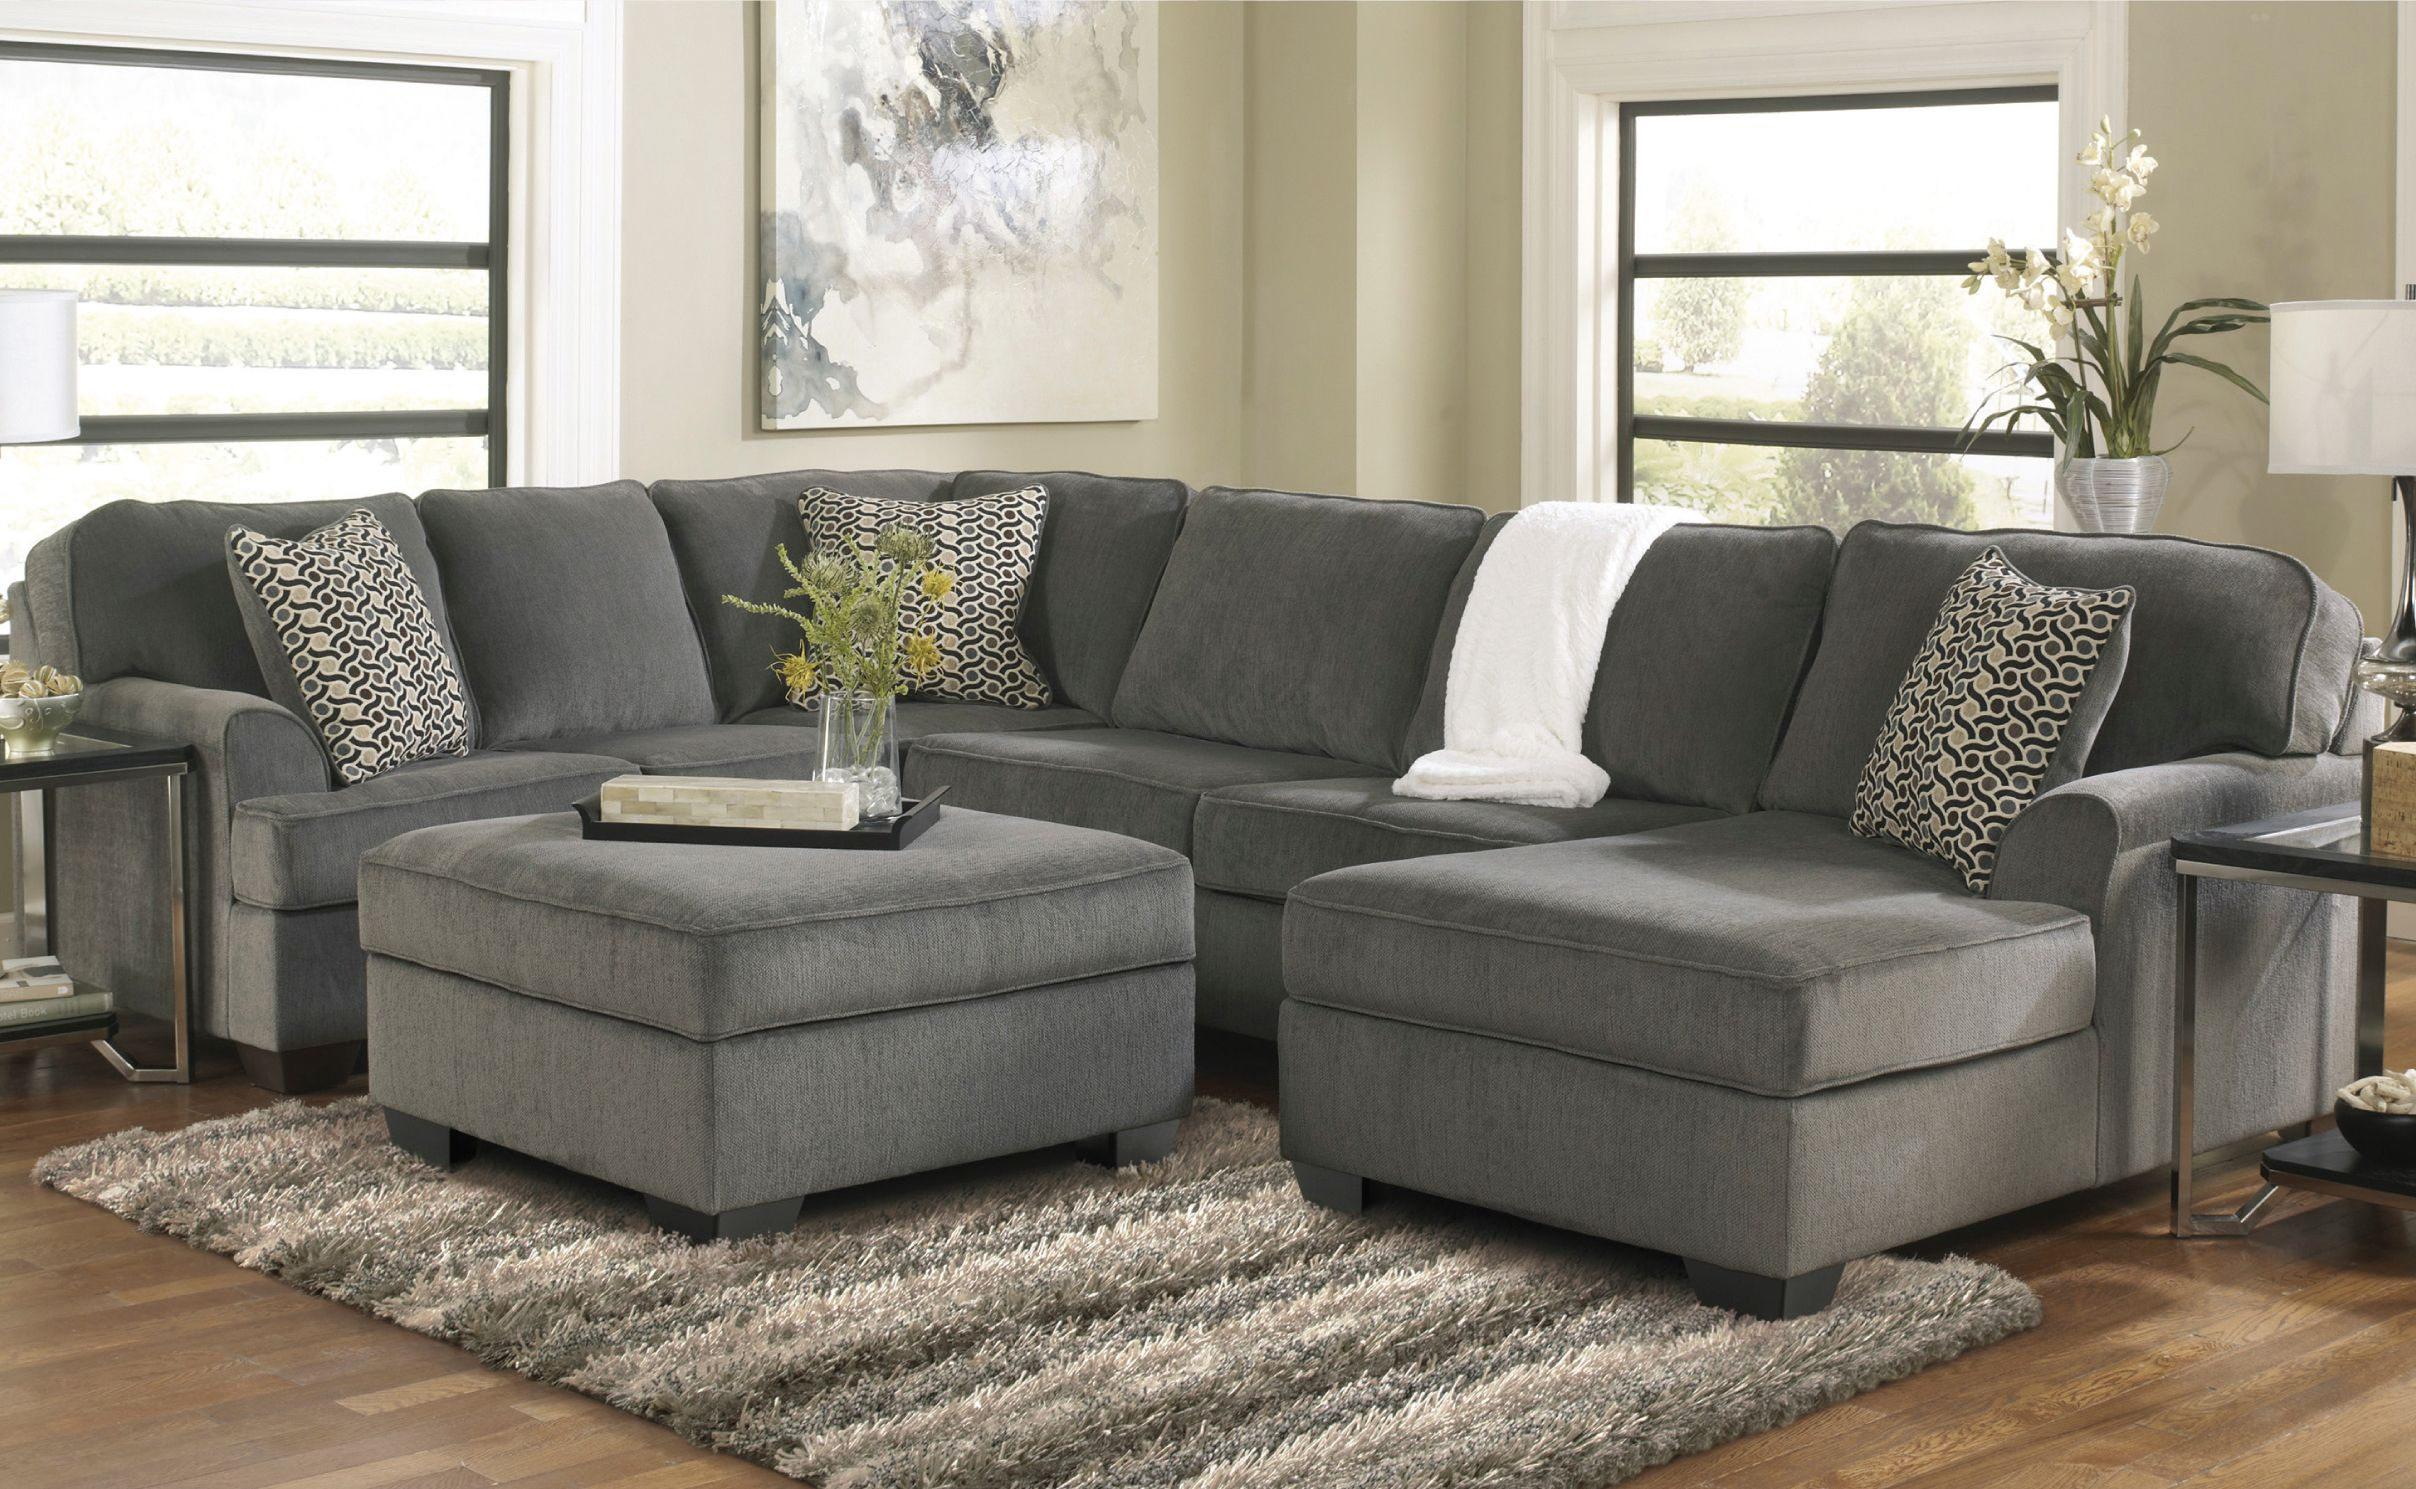 12 Living Room Sets On Clearance Most Of The Enchanting As Well As Lovely Too Cheap Living Room Furniture American Home Furniture Cheap Living Room Sets [ 1489 x 2416 Pixel ]